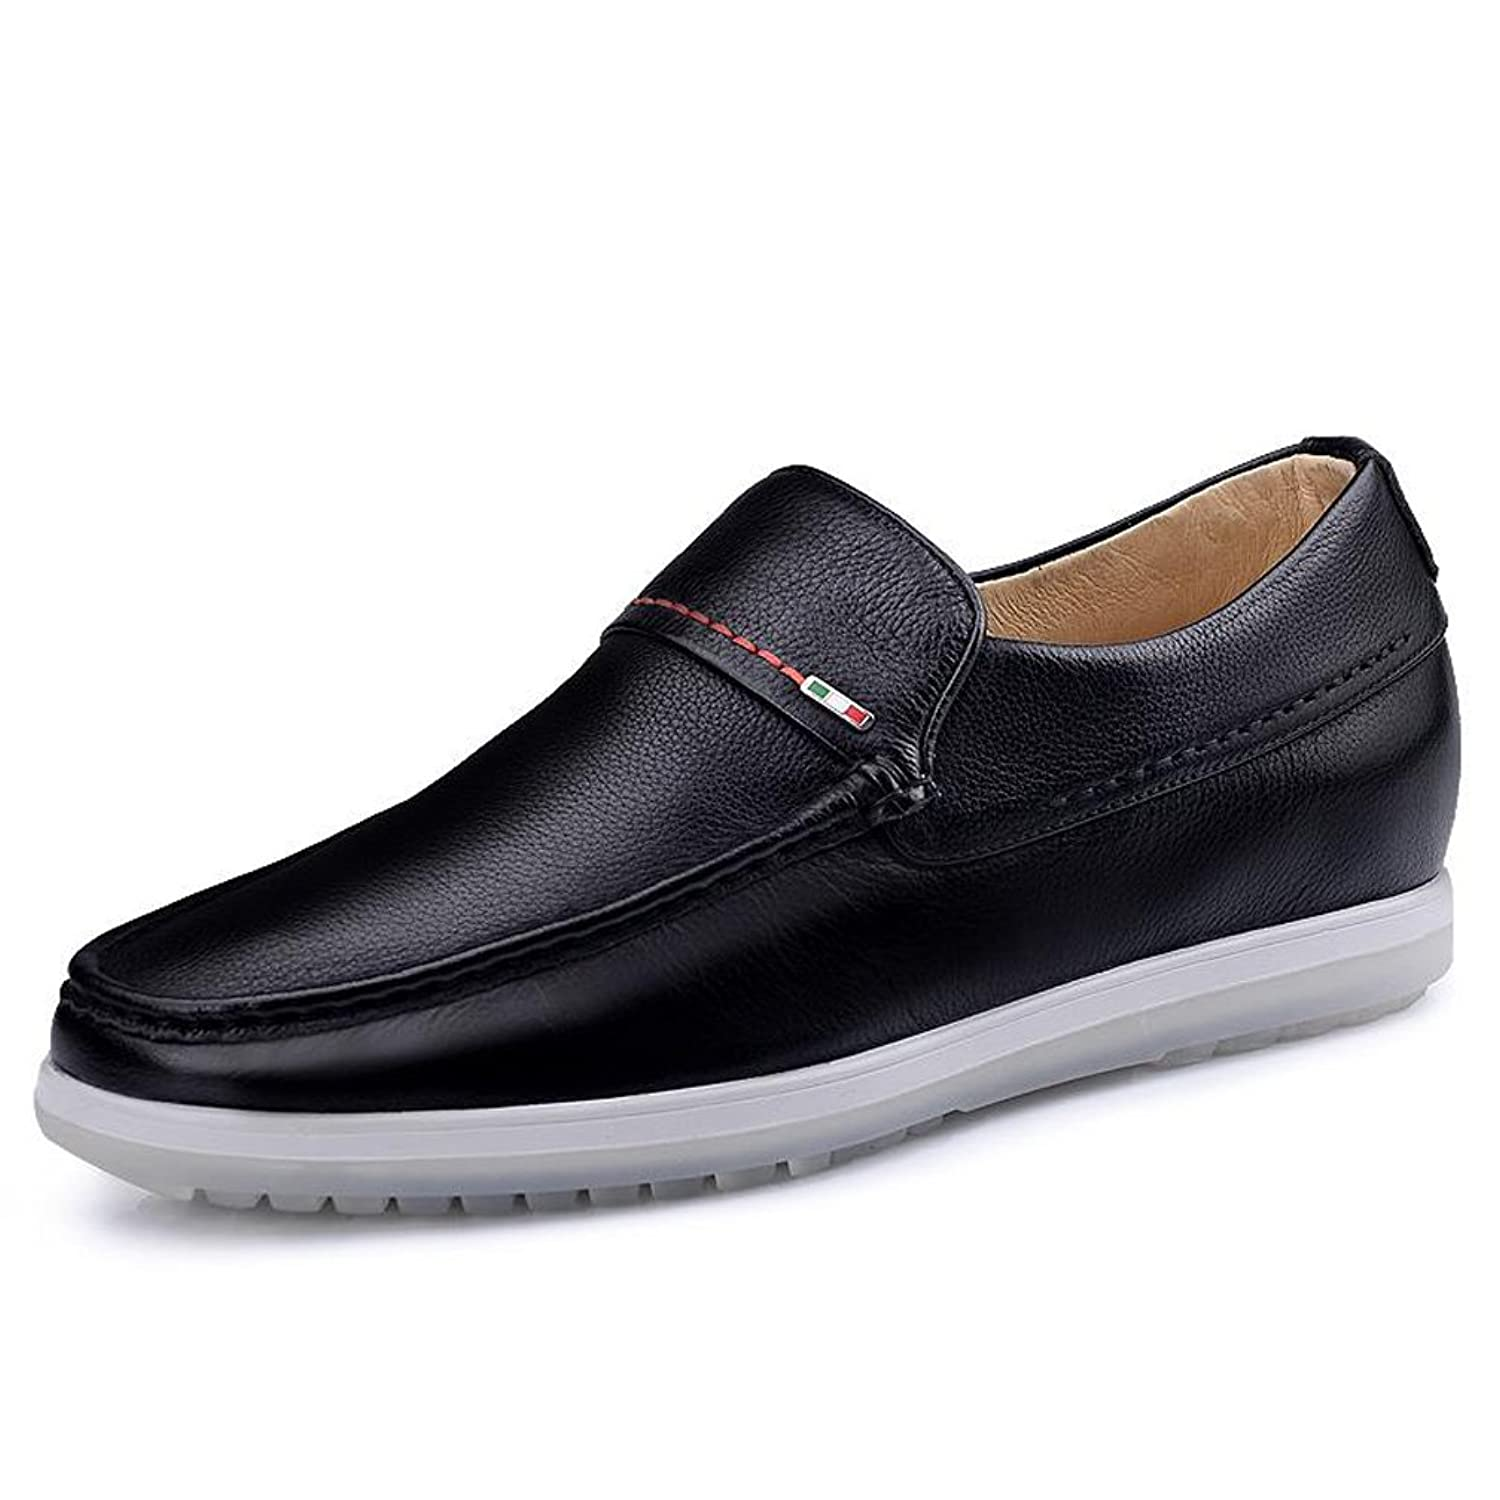 2.36 Inches Taller-Men's Comfort Driving Car Shoes Soft Leather Flats Loafers Casual Walking Shoes Black